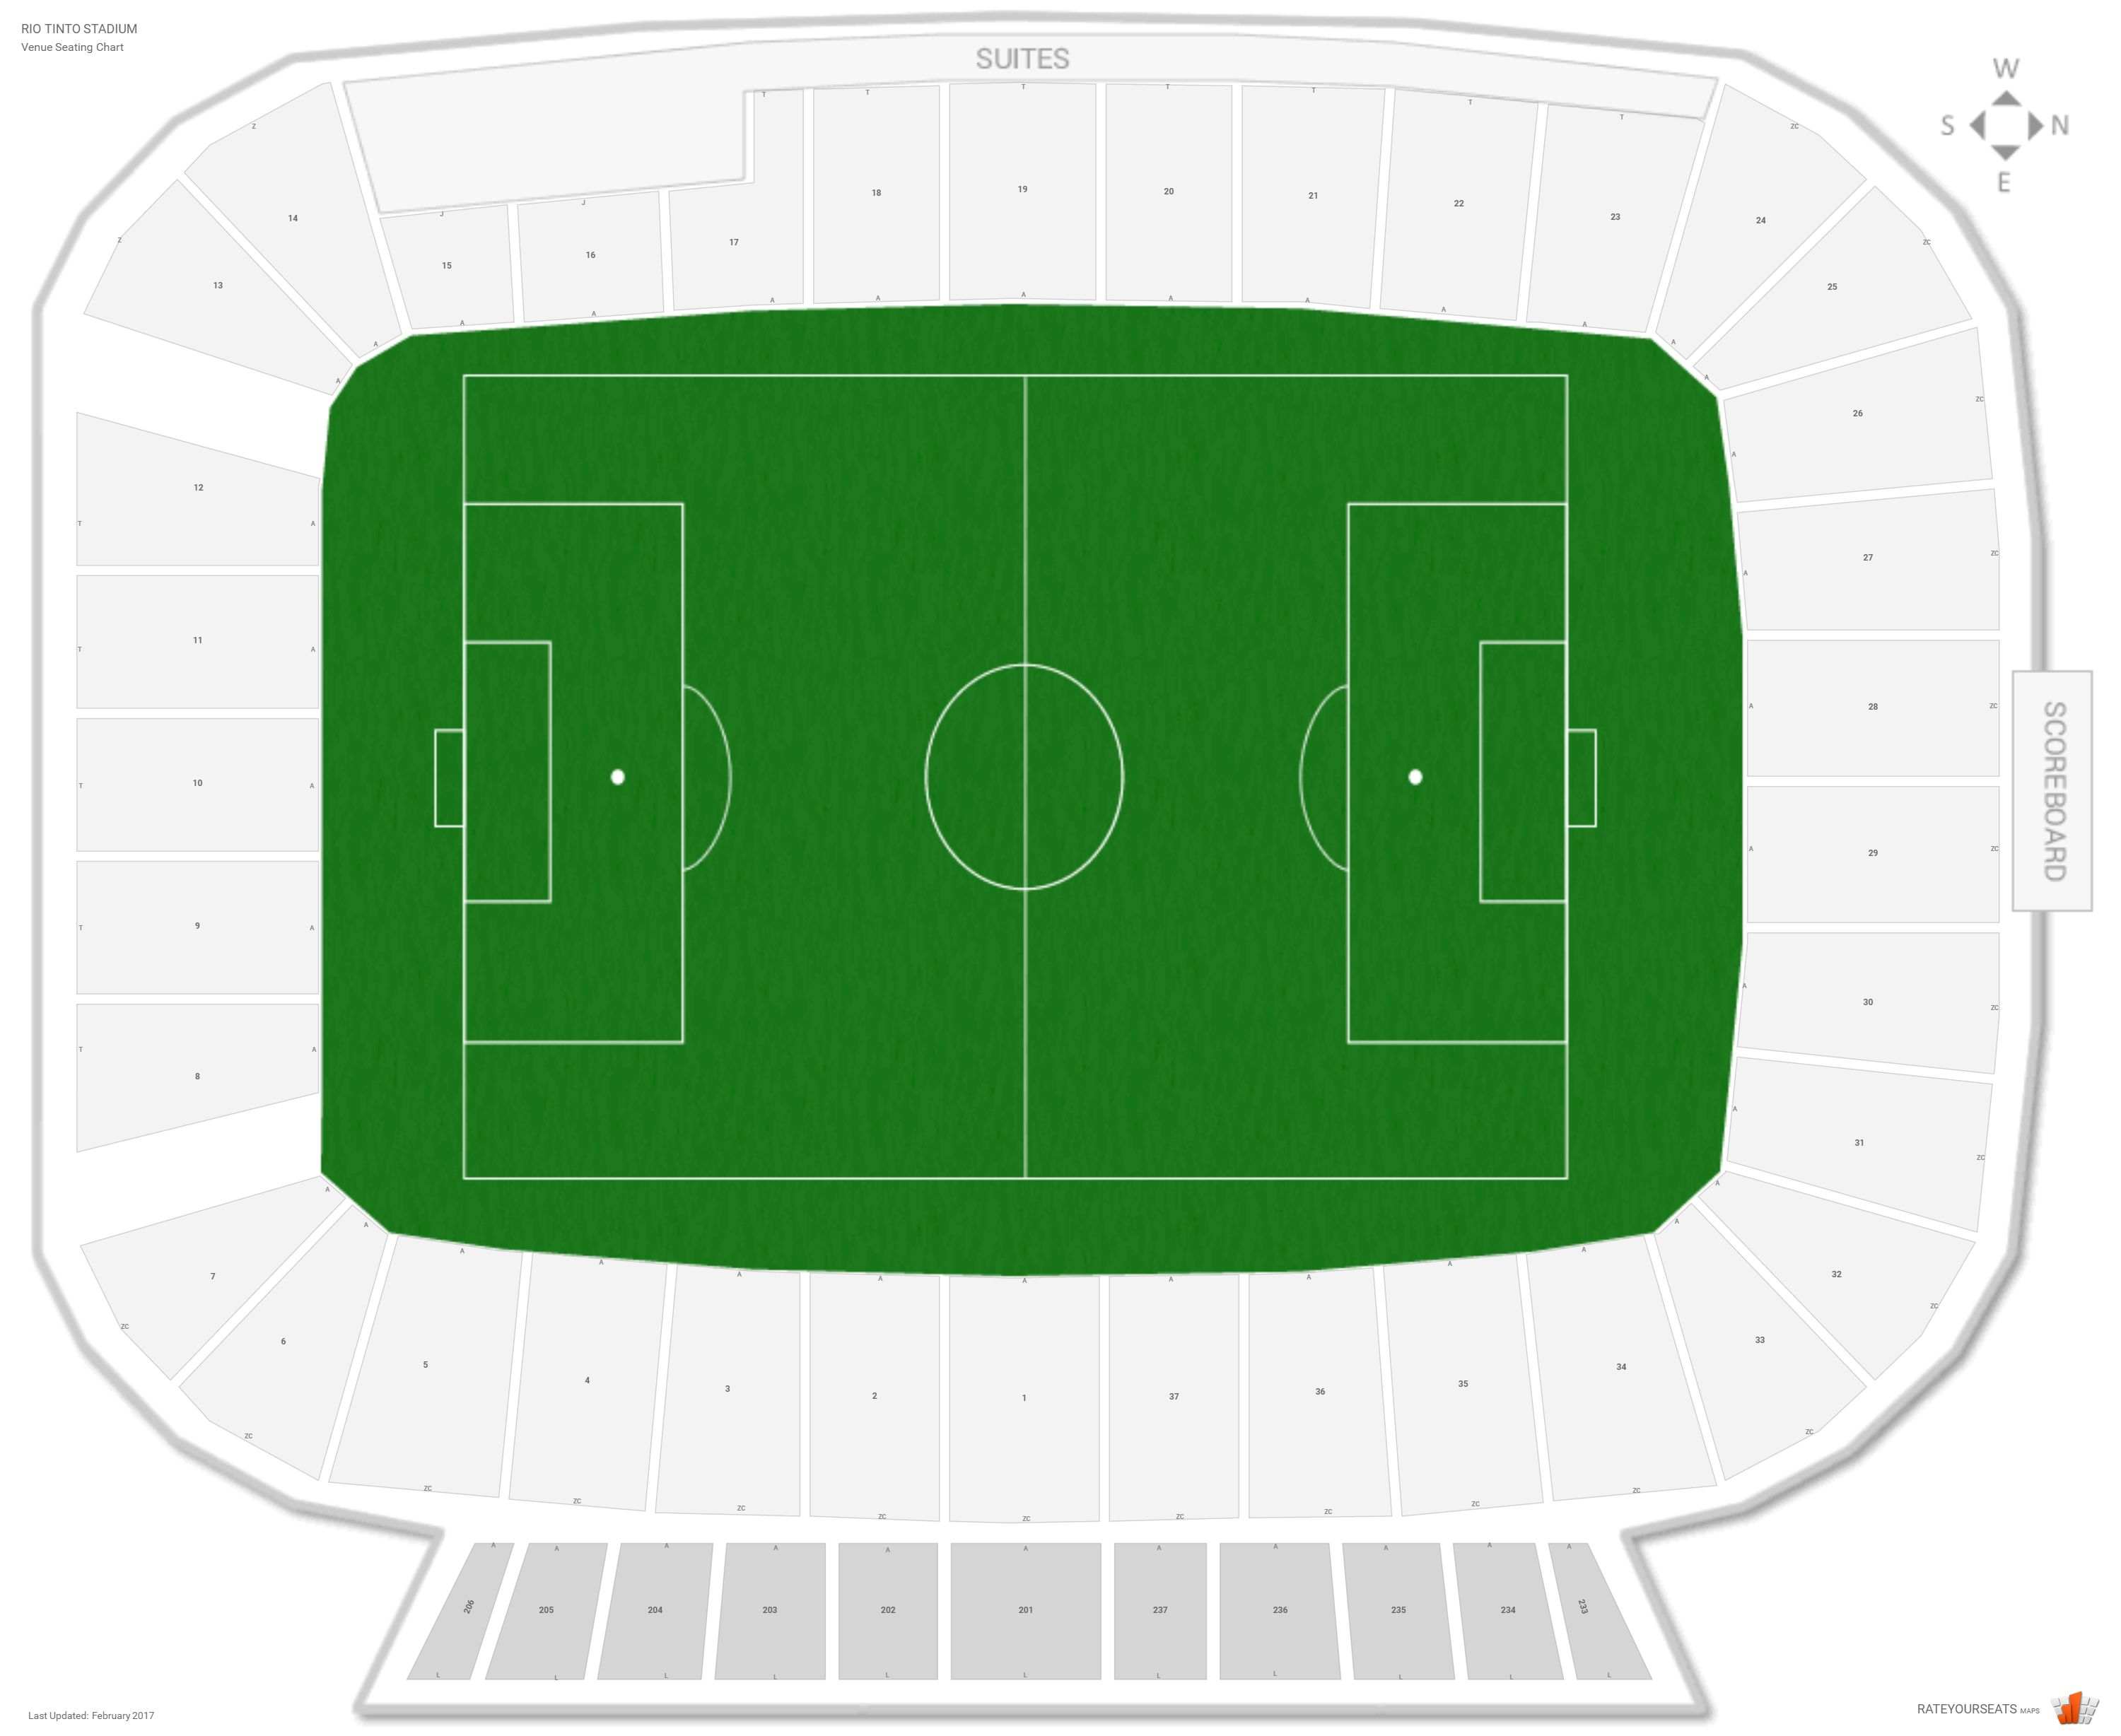 Rio Tinto Stadium Seating Chart with Row Numbers